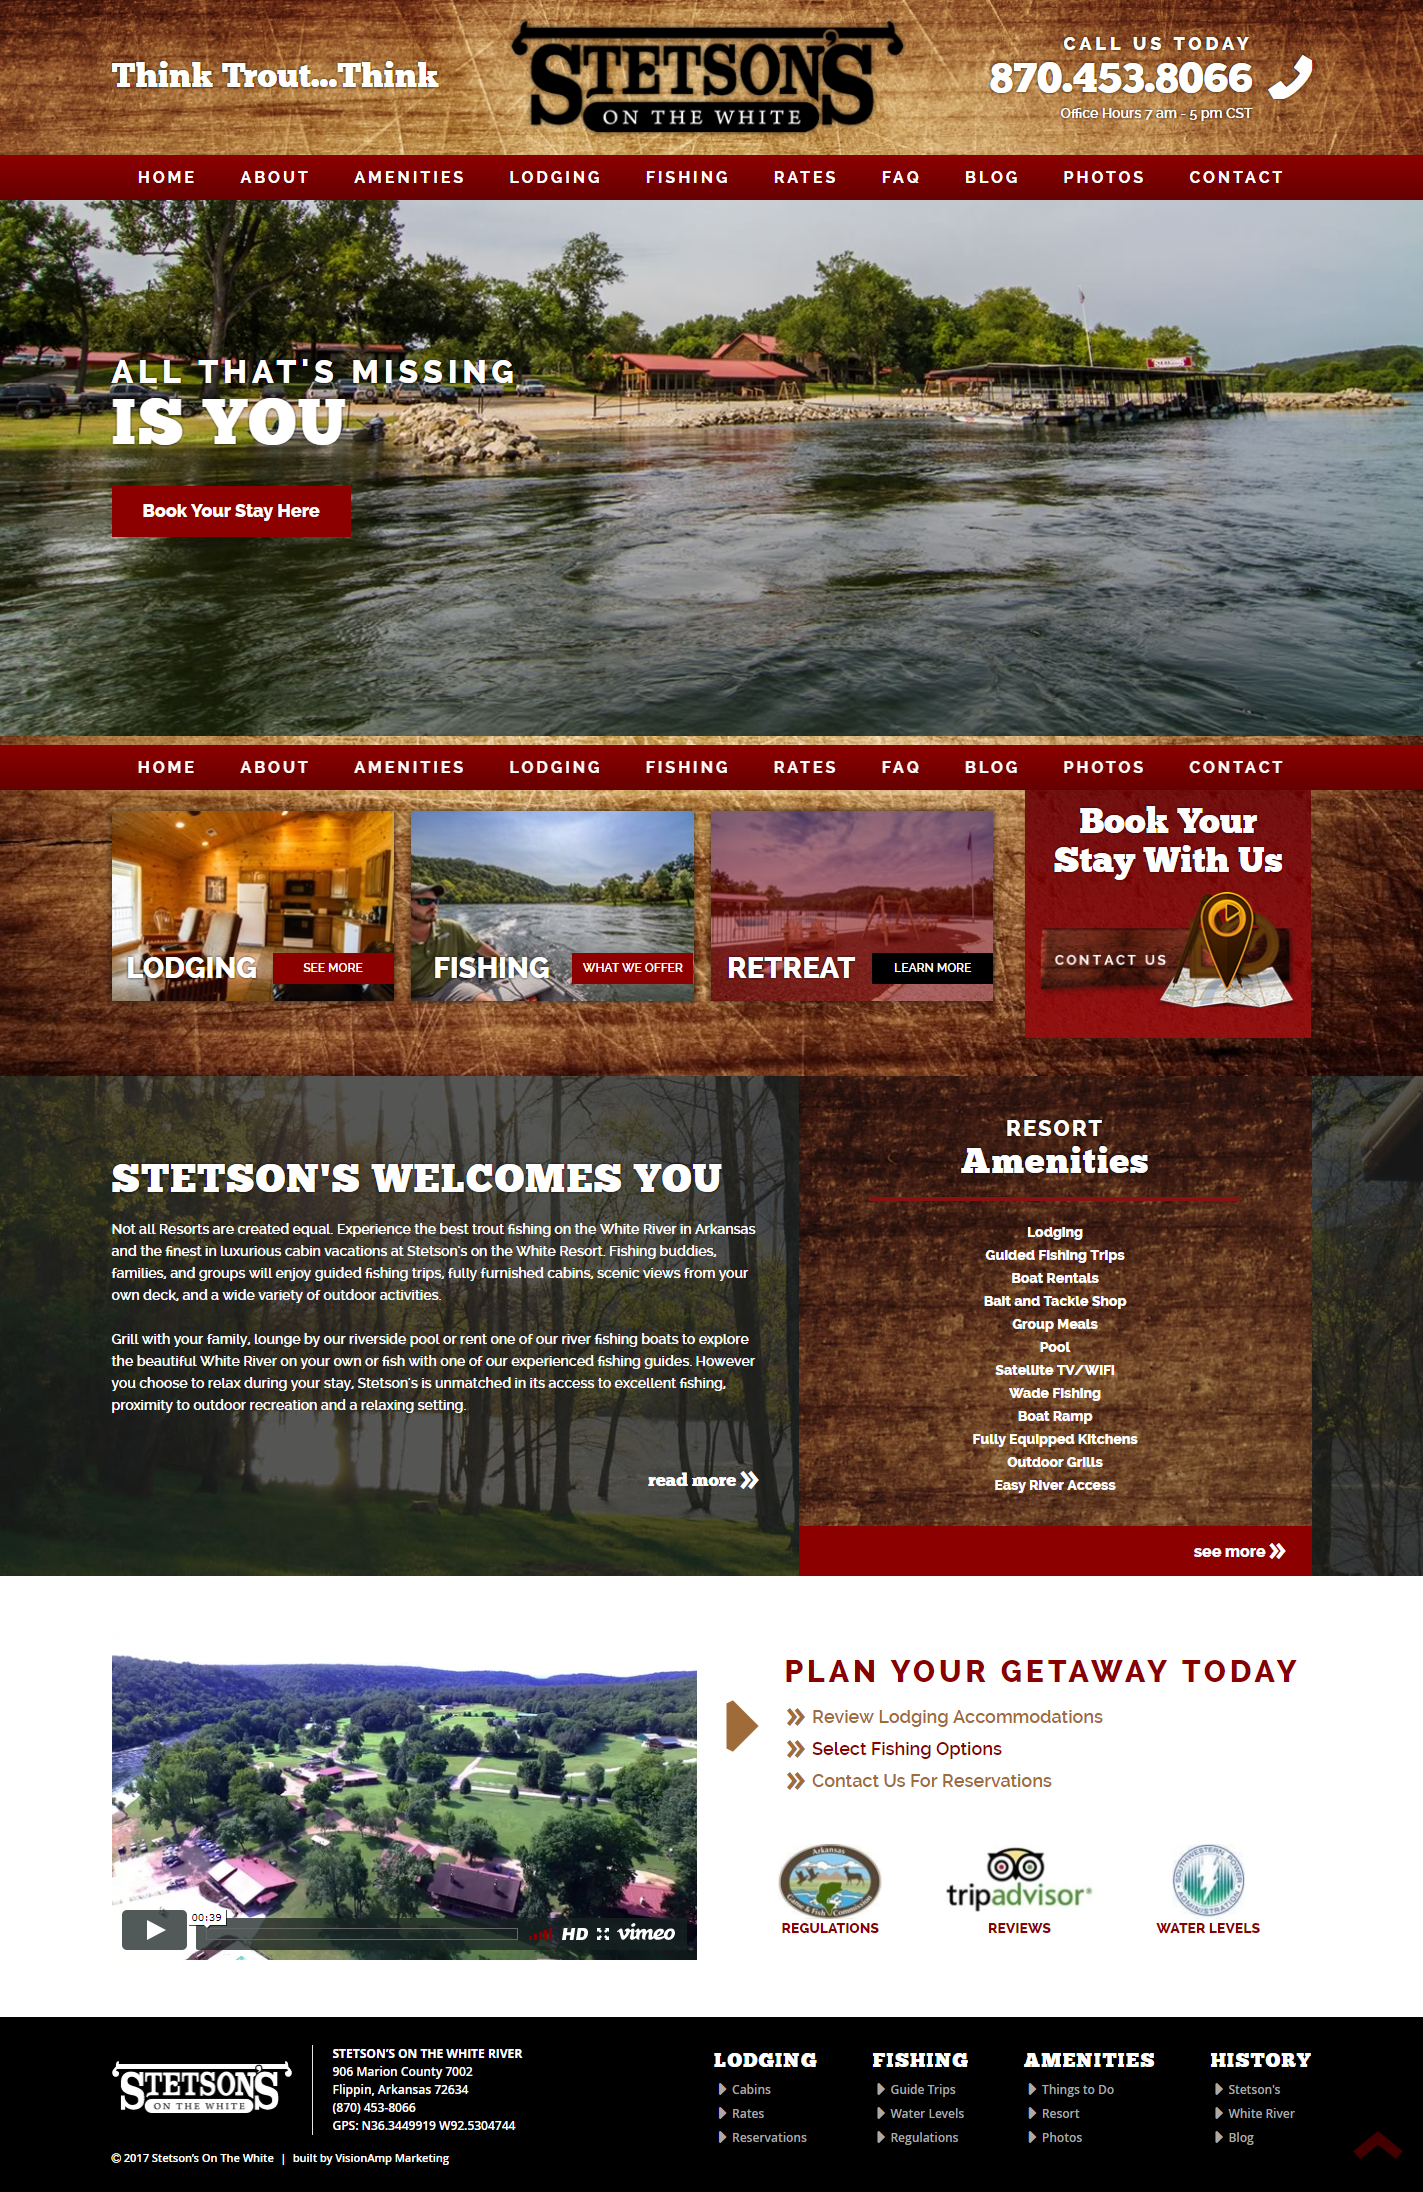 Stetsons on the White Full Web Design Image